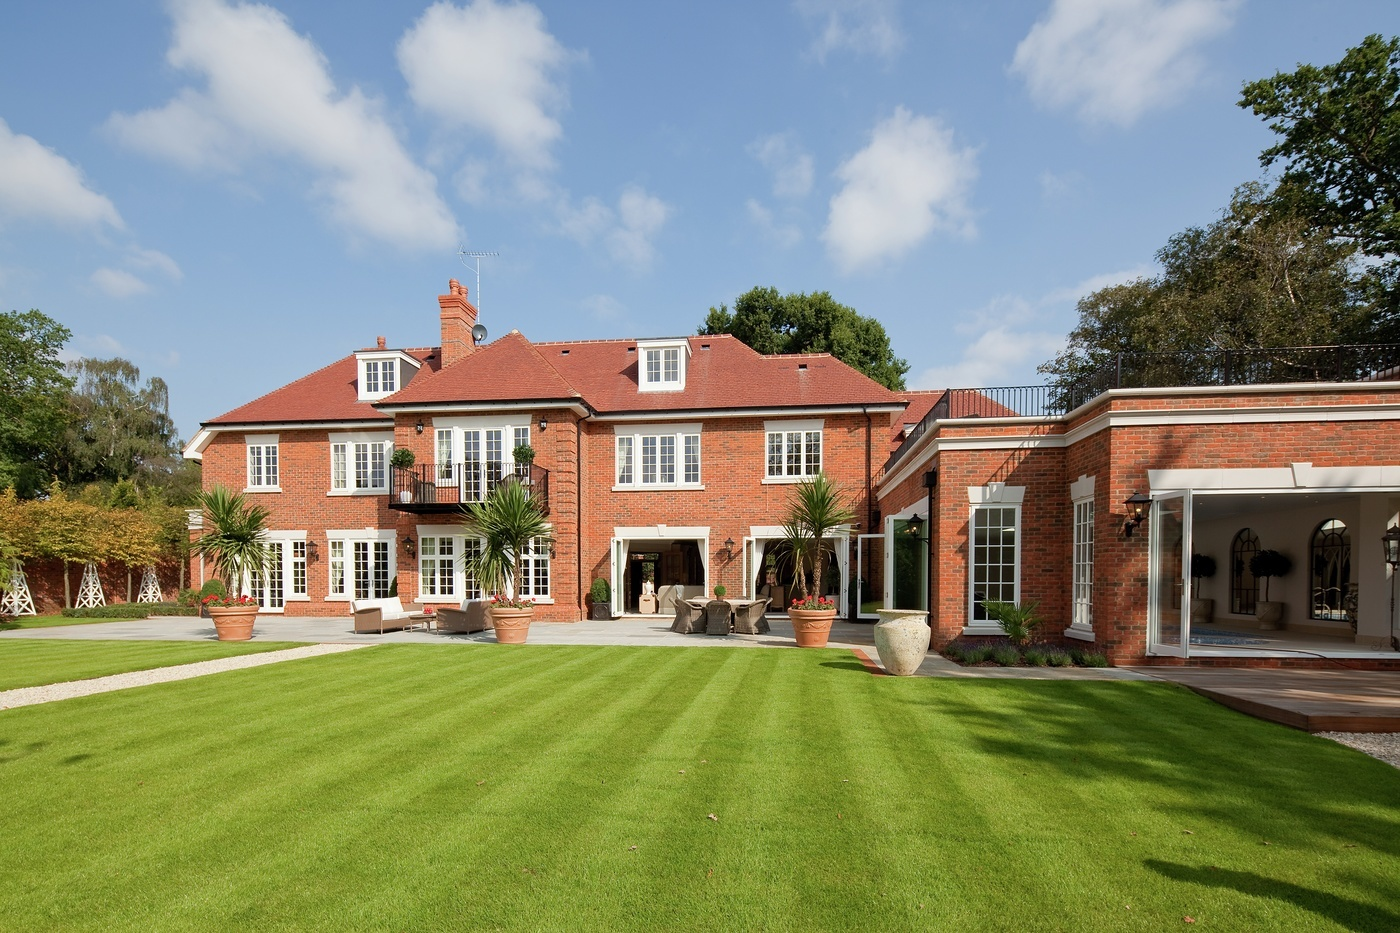 september-house-wentworth-estate-our-work-private-clients-ascot-design-view2.jpg